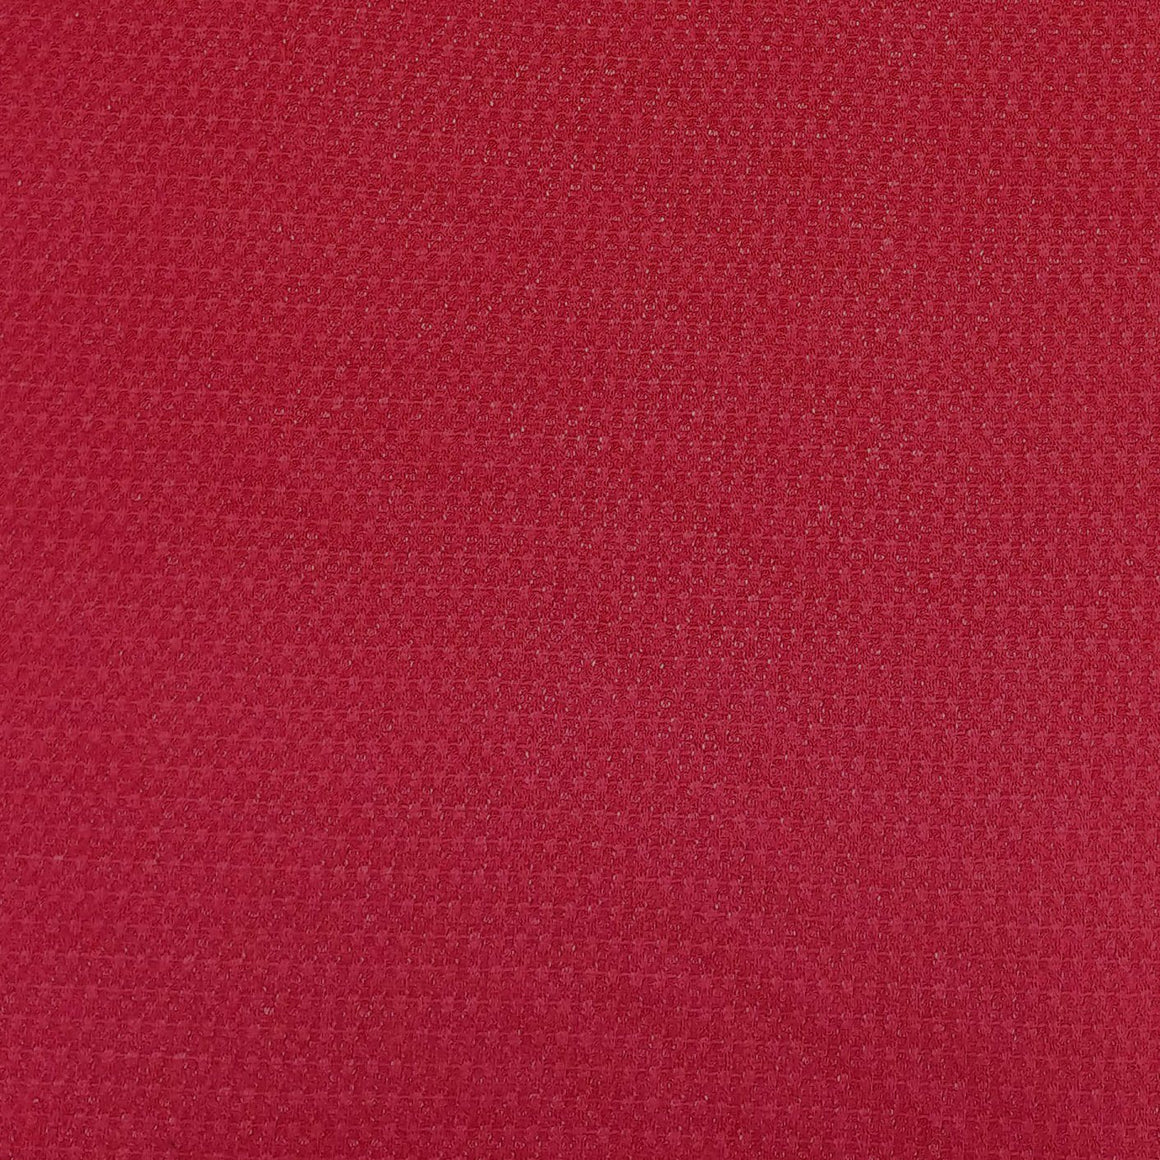 Solid Red ITY Poly Spandex Knit - Raspberry Creek Fabrics